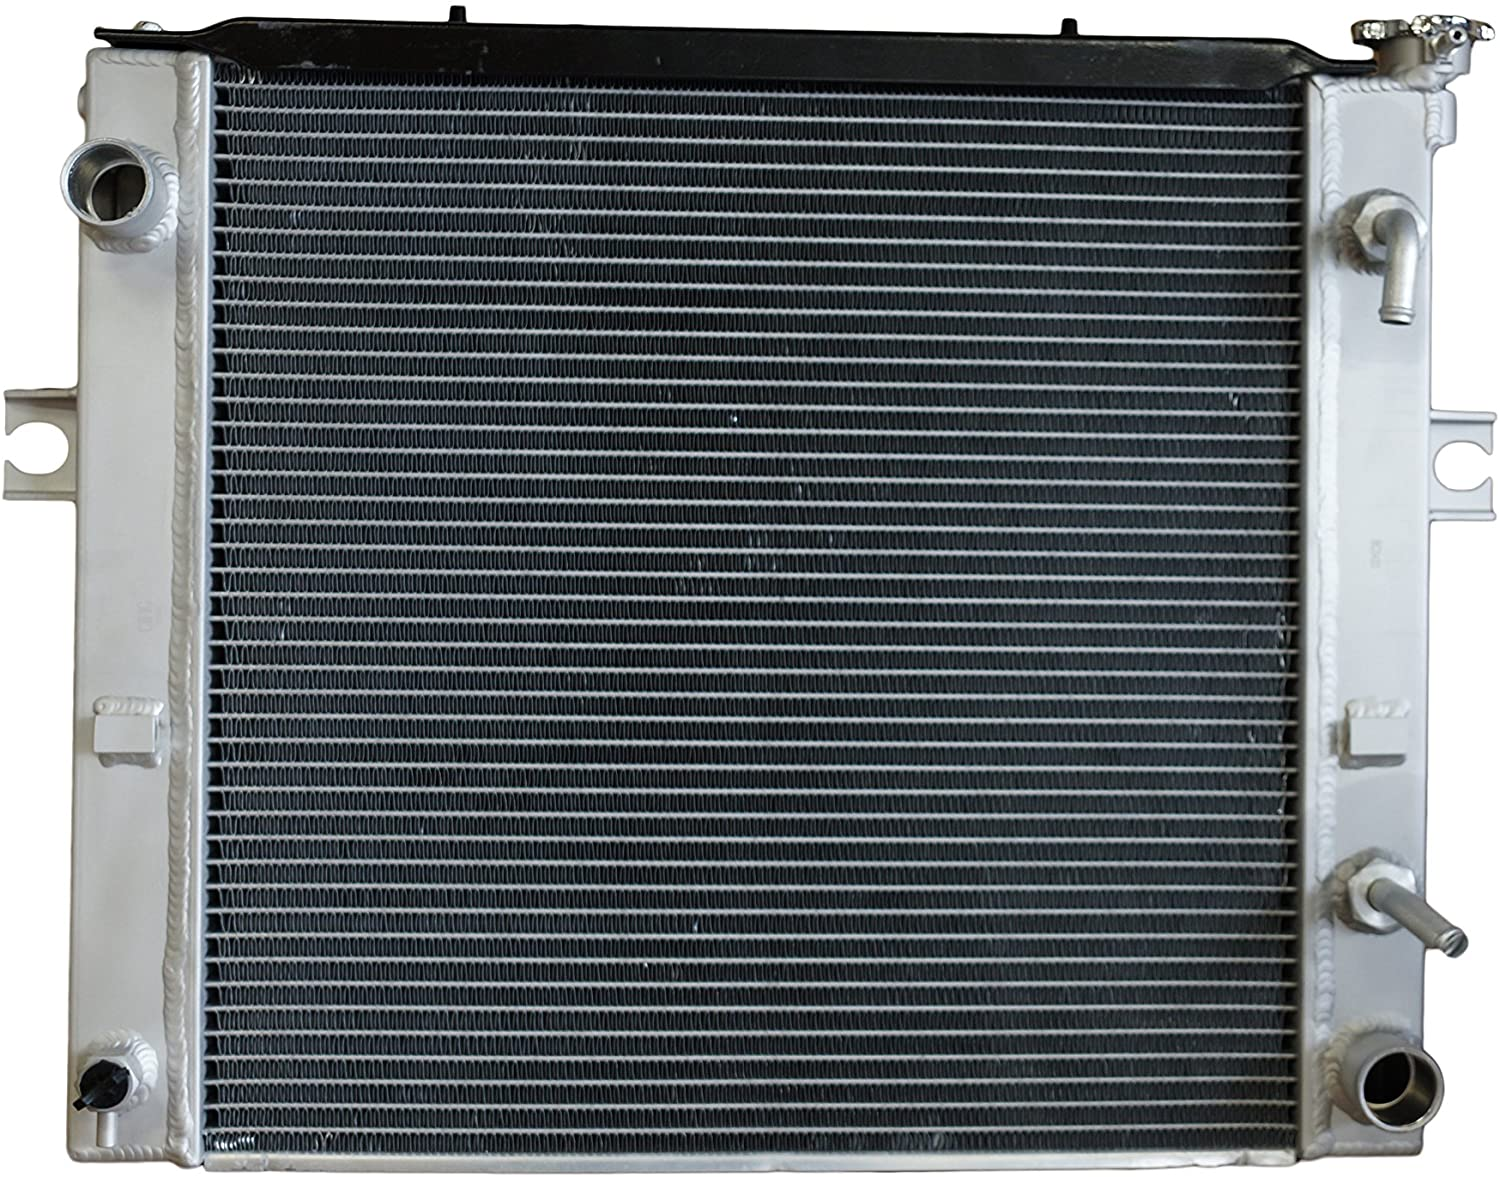 CIFIC B2024 Replacement Aluminium Radiator For Toyota Forklift 7FGCU25 16410U22071 16410U220171 16420F118071A